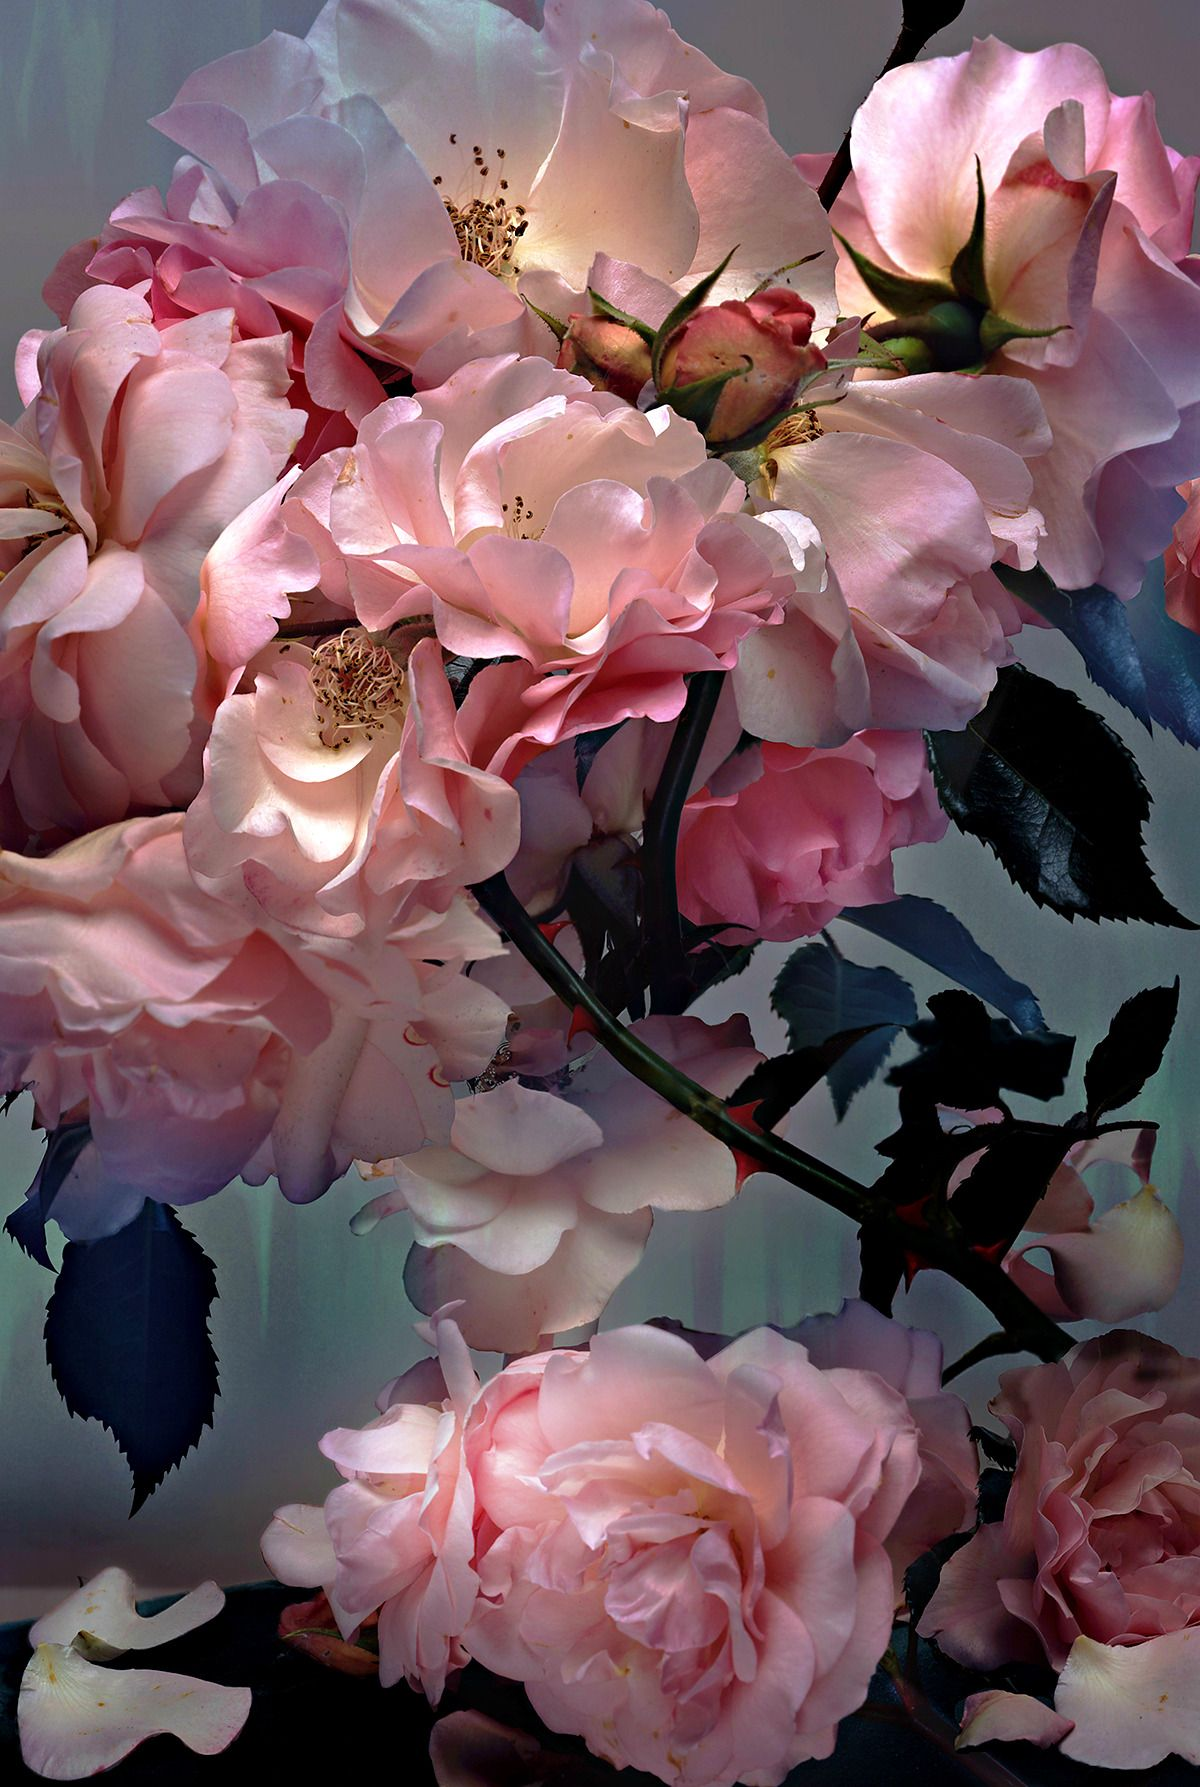 robertocustodioart Roses by Nick Knight 2008 Nick absolutely museum